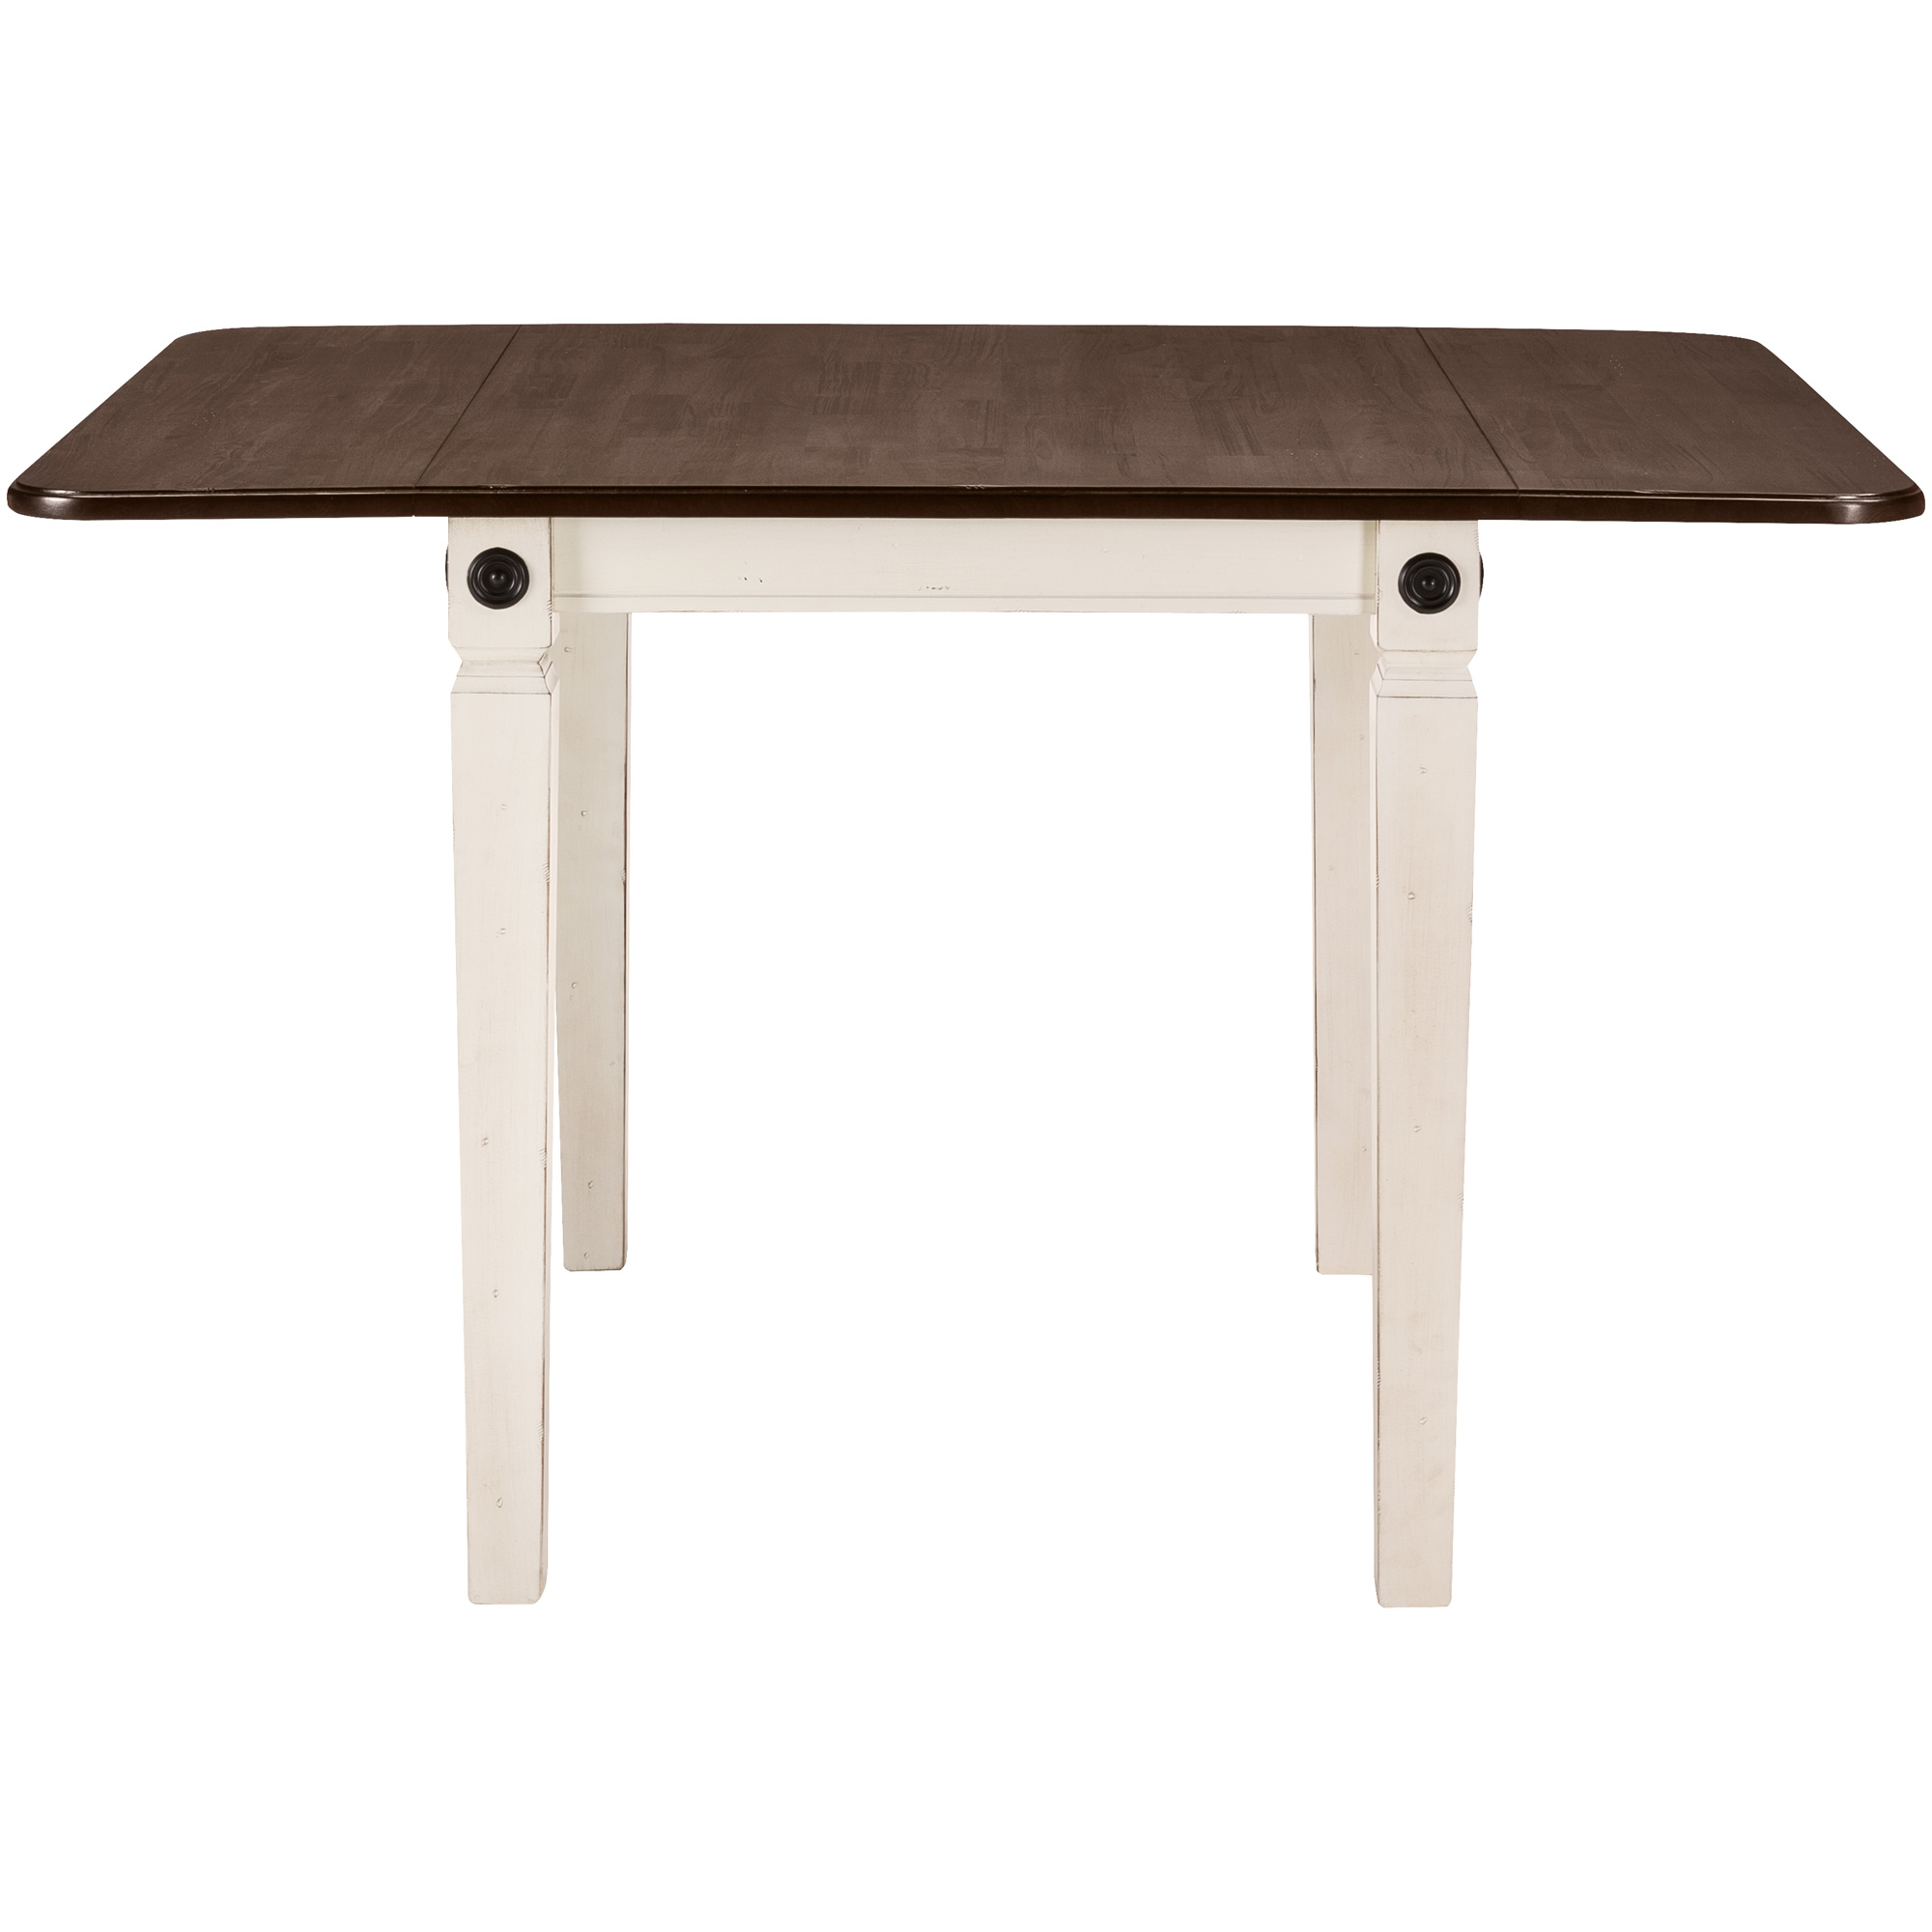 Intercon | Glennwood Antique White Drop Leaf Table